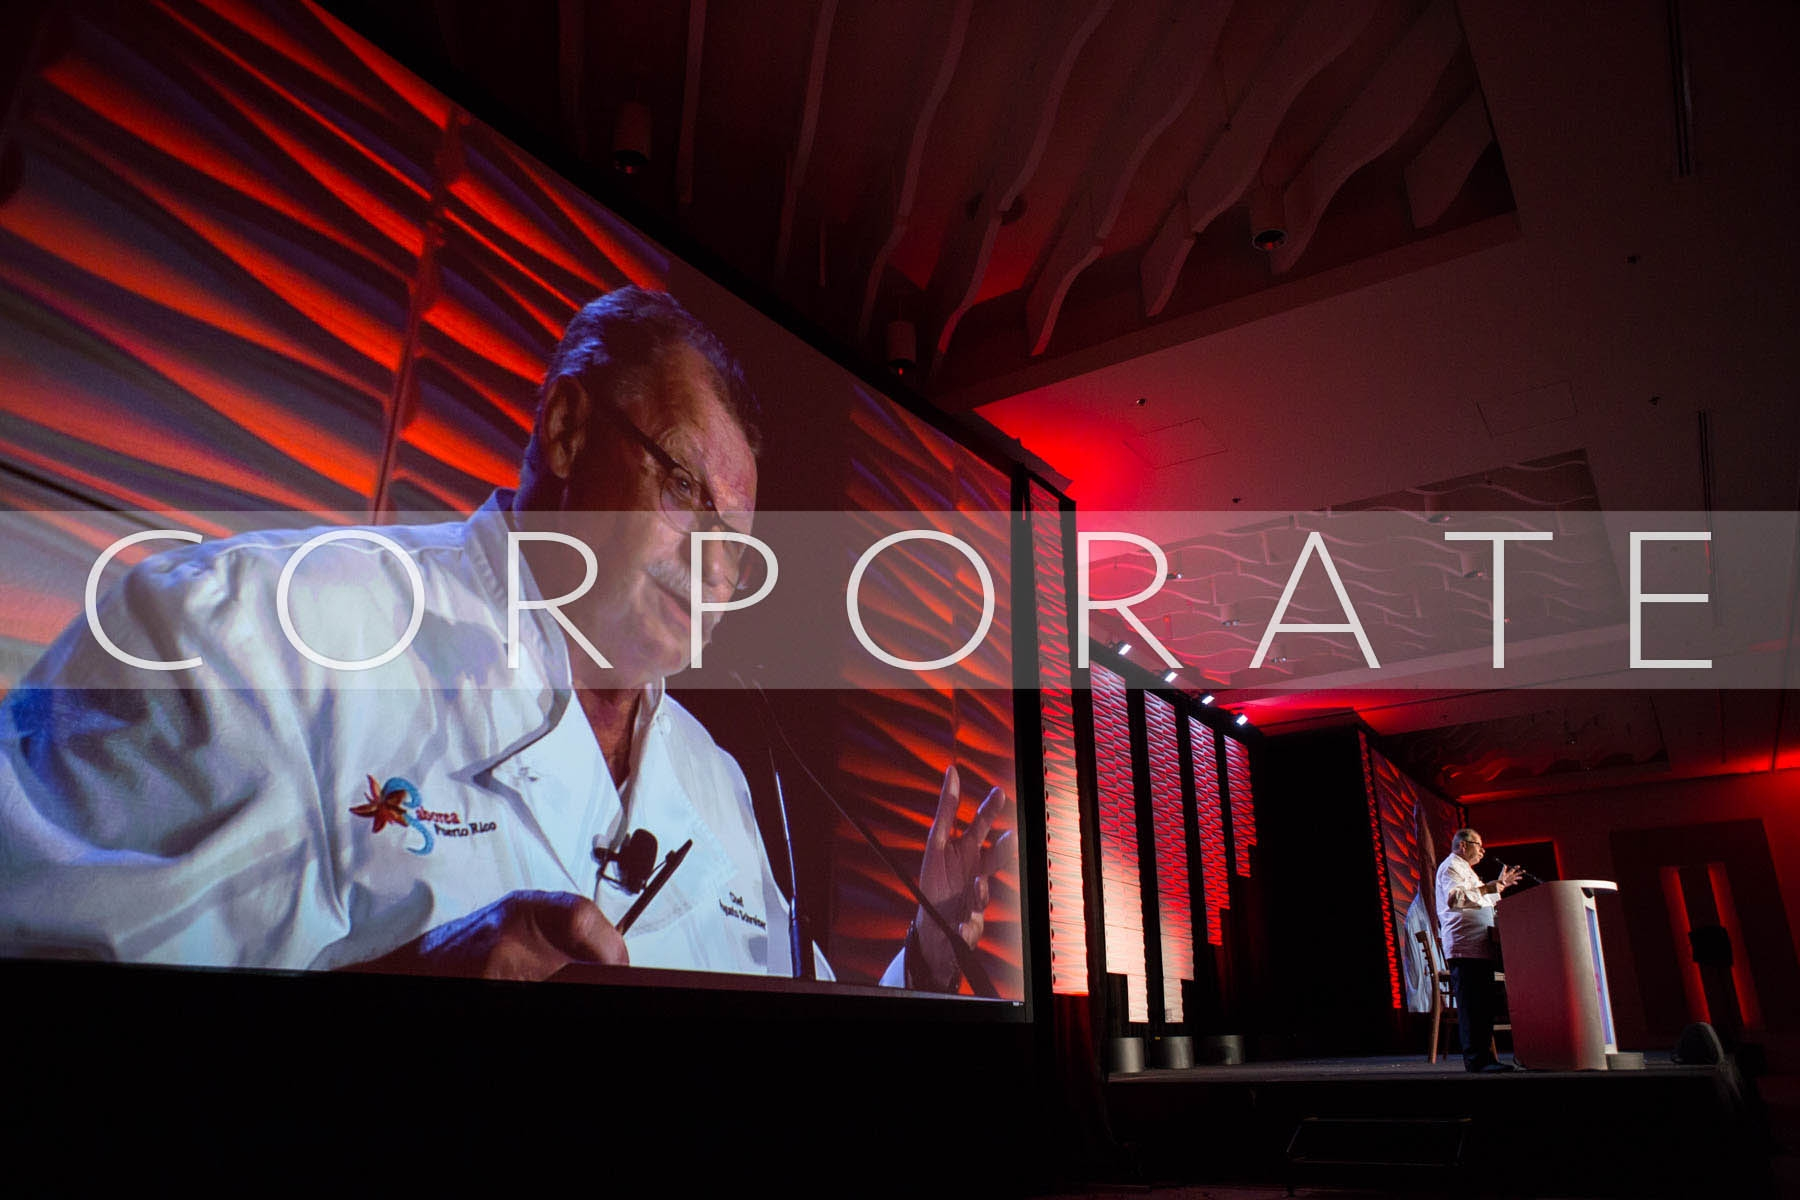 Puerto Rico corporate event photographer